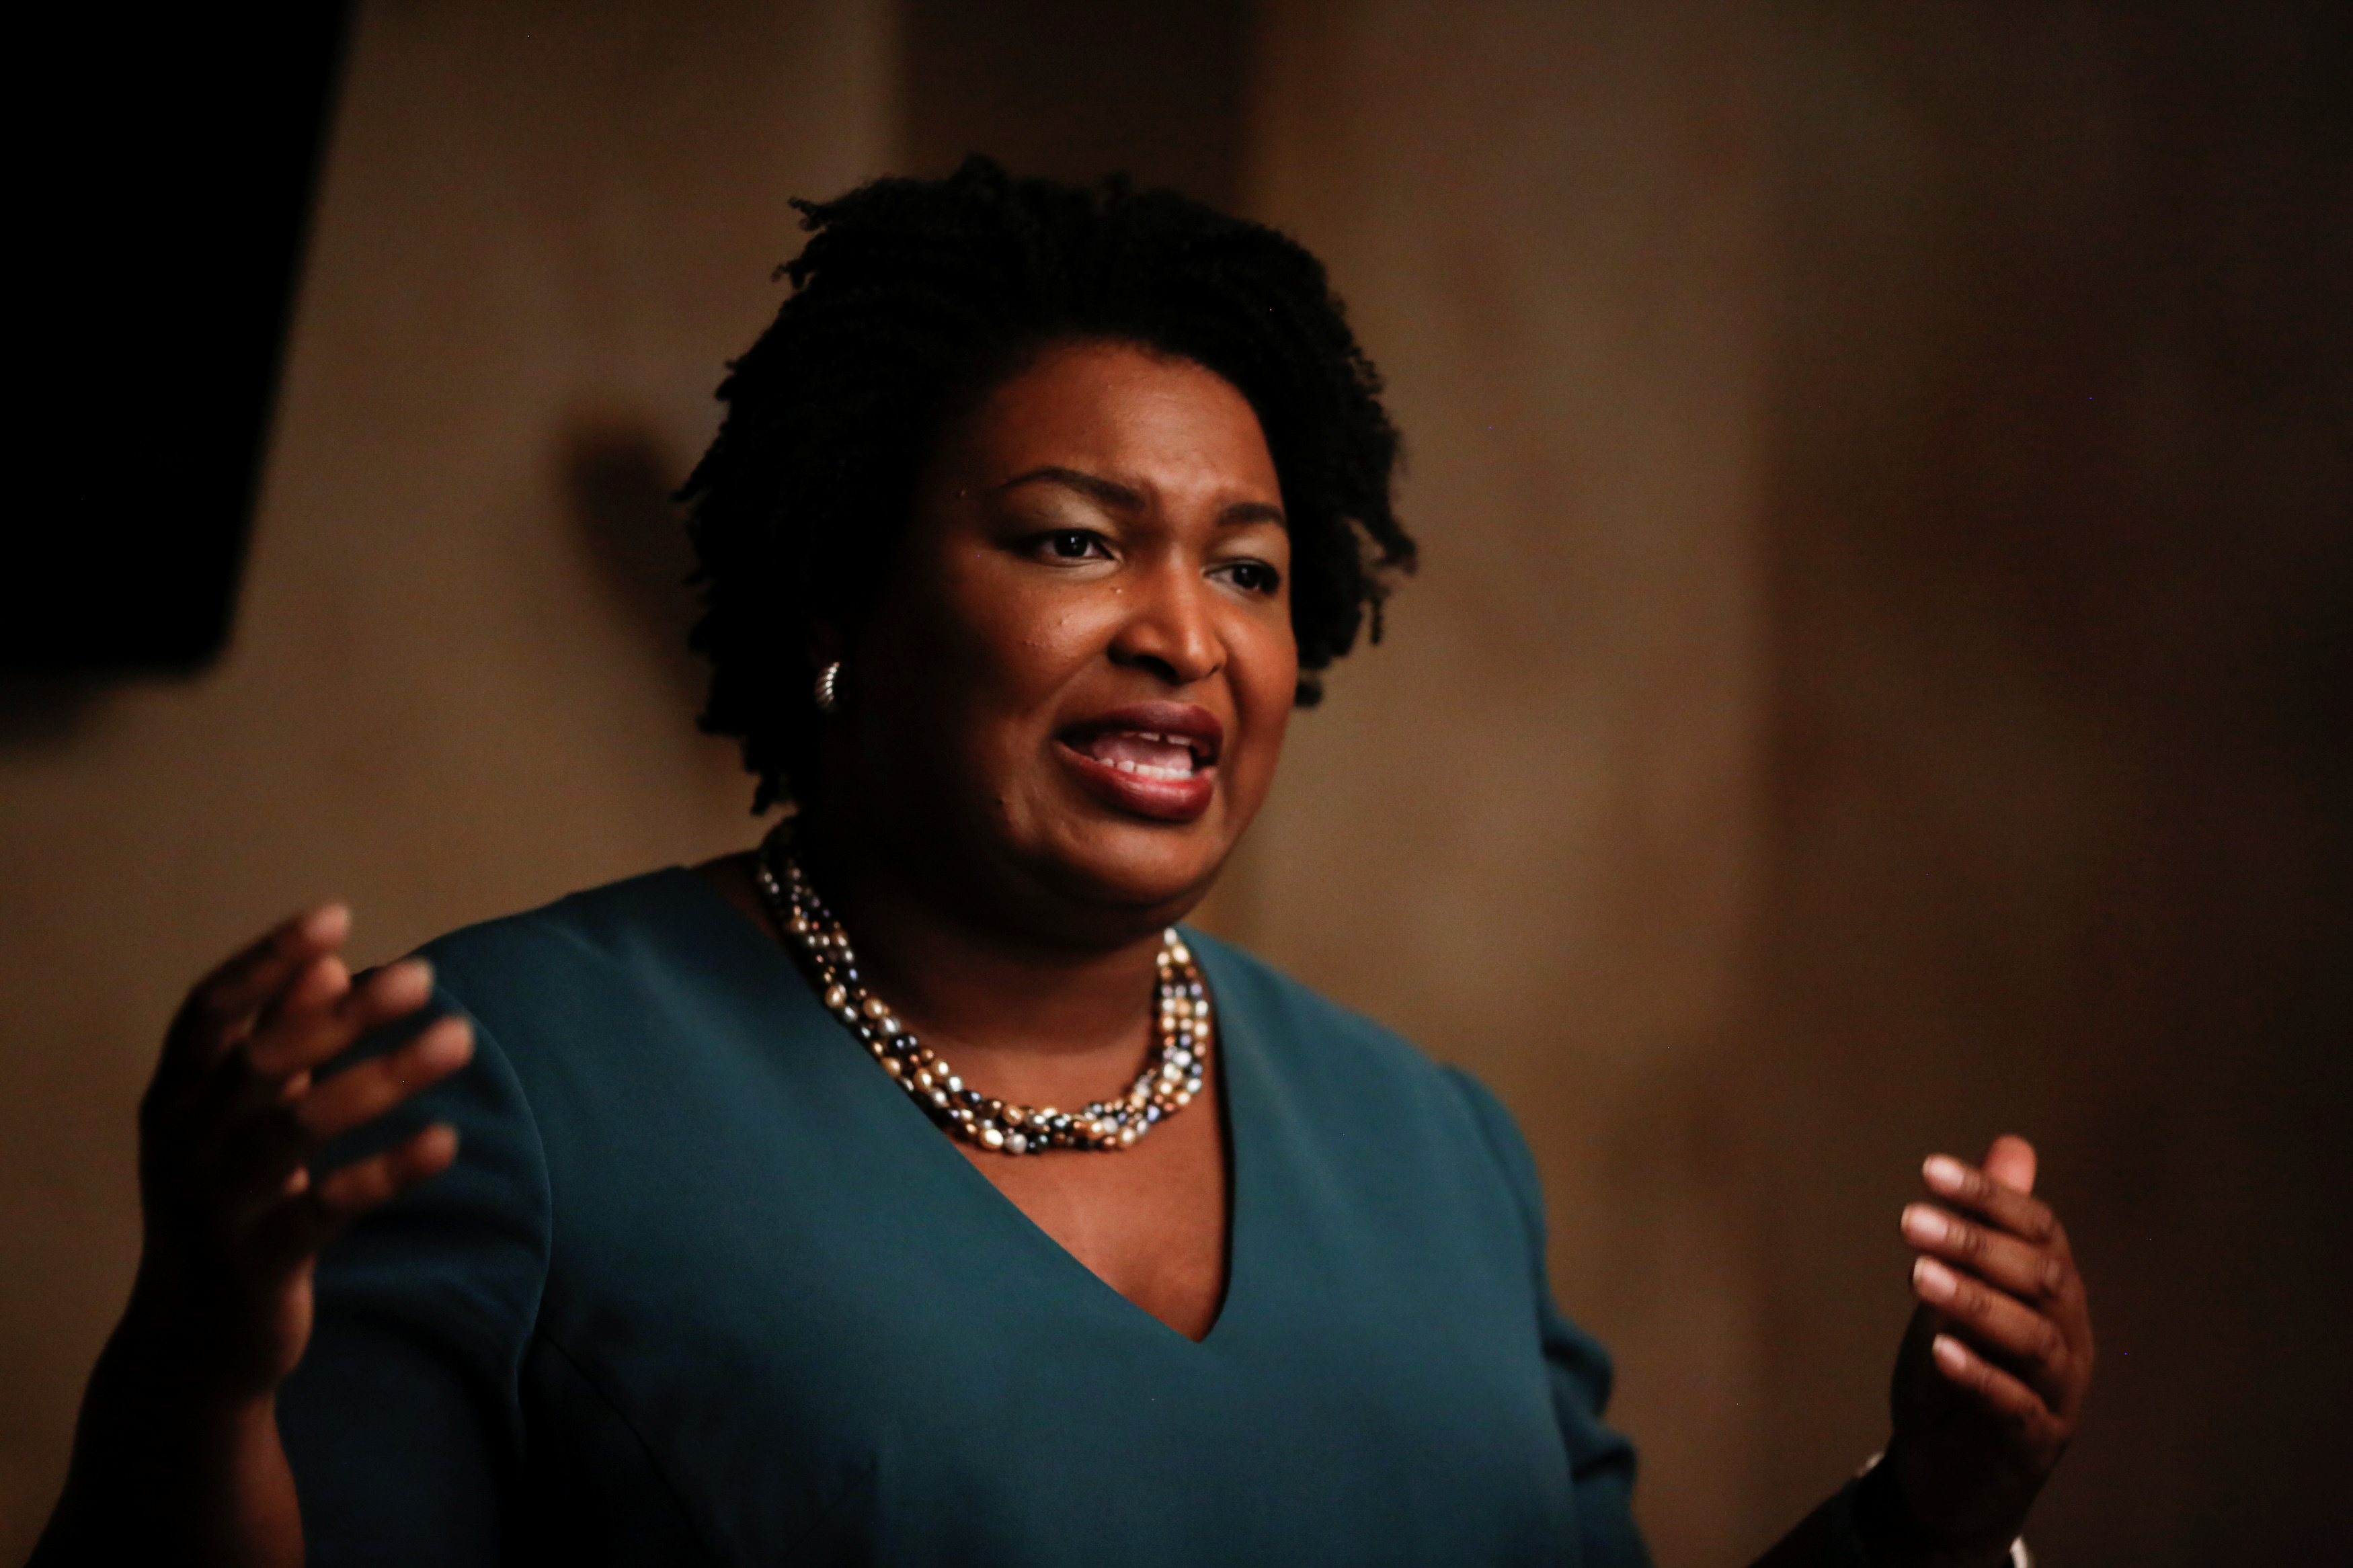 Stacey Abrams speaks at a Young Democrats of Cobb County meeting as she campaigns in Cobb County